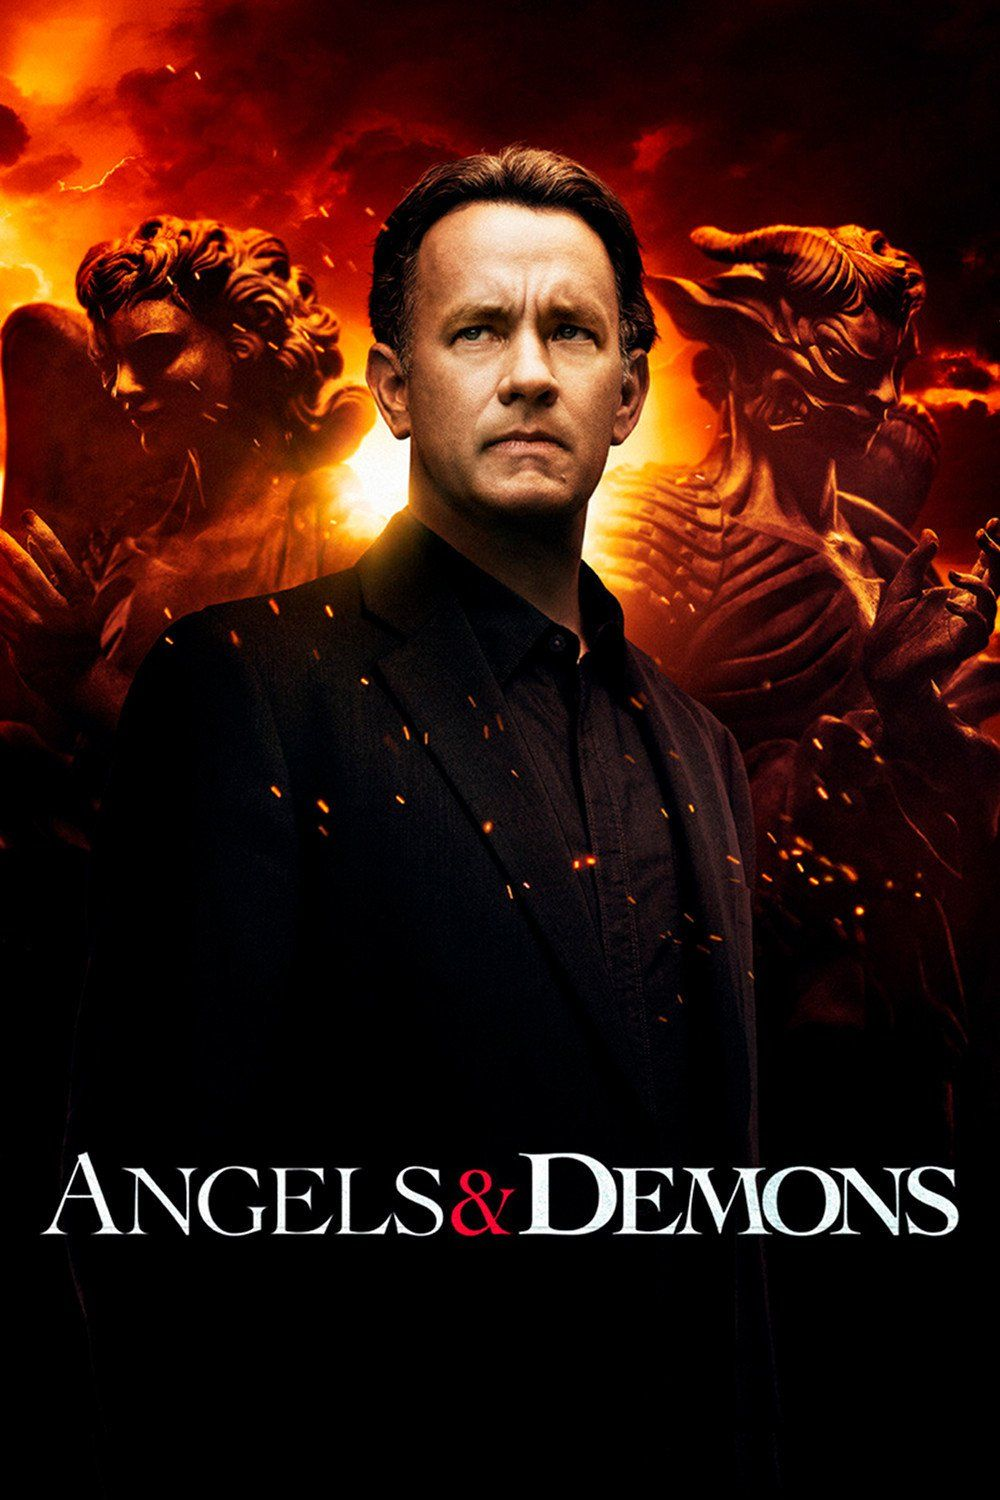 angels and demons movie online free with subtitles